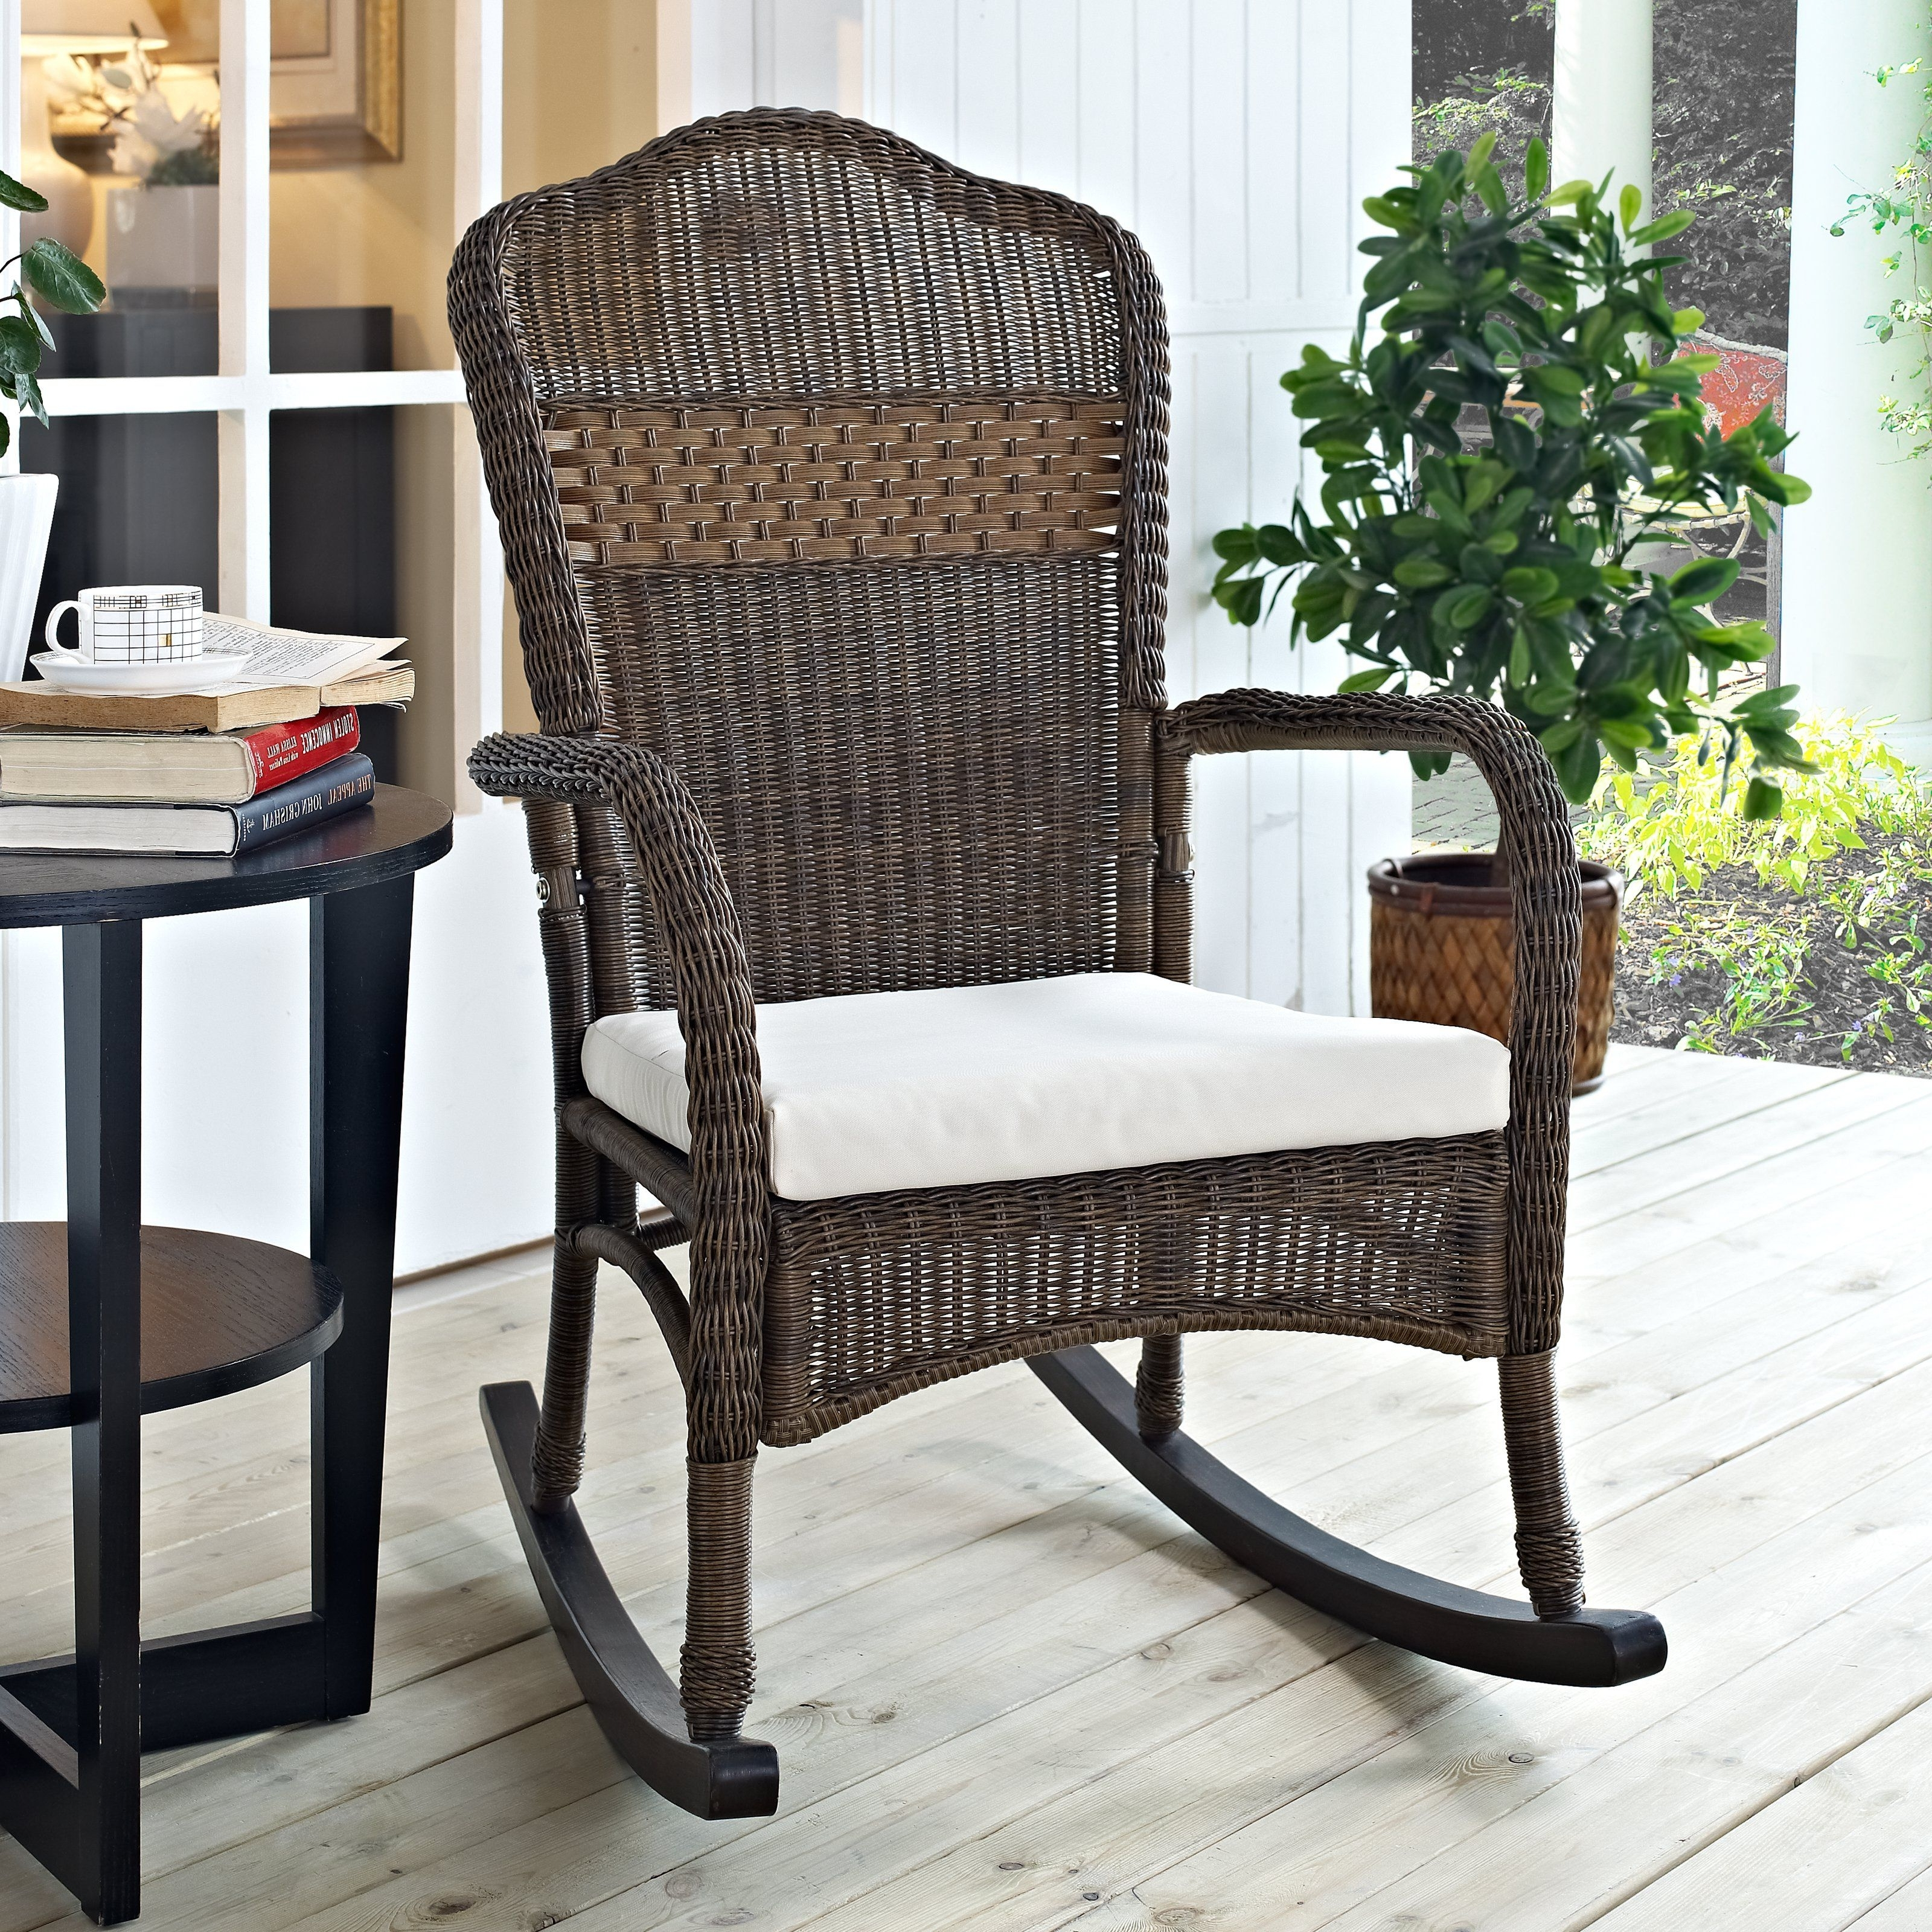 Best And Newest Outdoor Coral Coast Mocha Resin Wicker Rocking Chair With Beige Intended For Outdoor Wicker Rocking Chairs With Cushions (View 2 of 15)